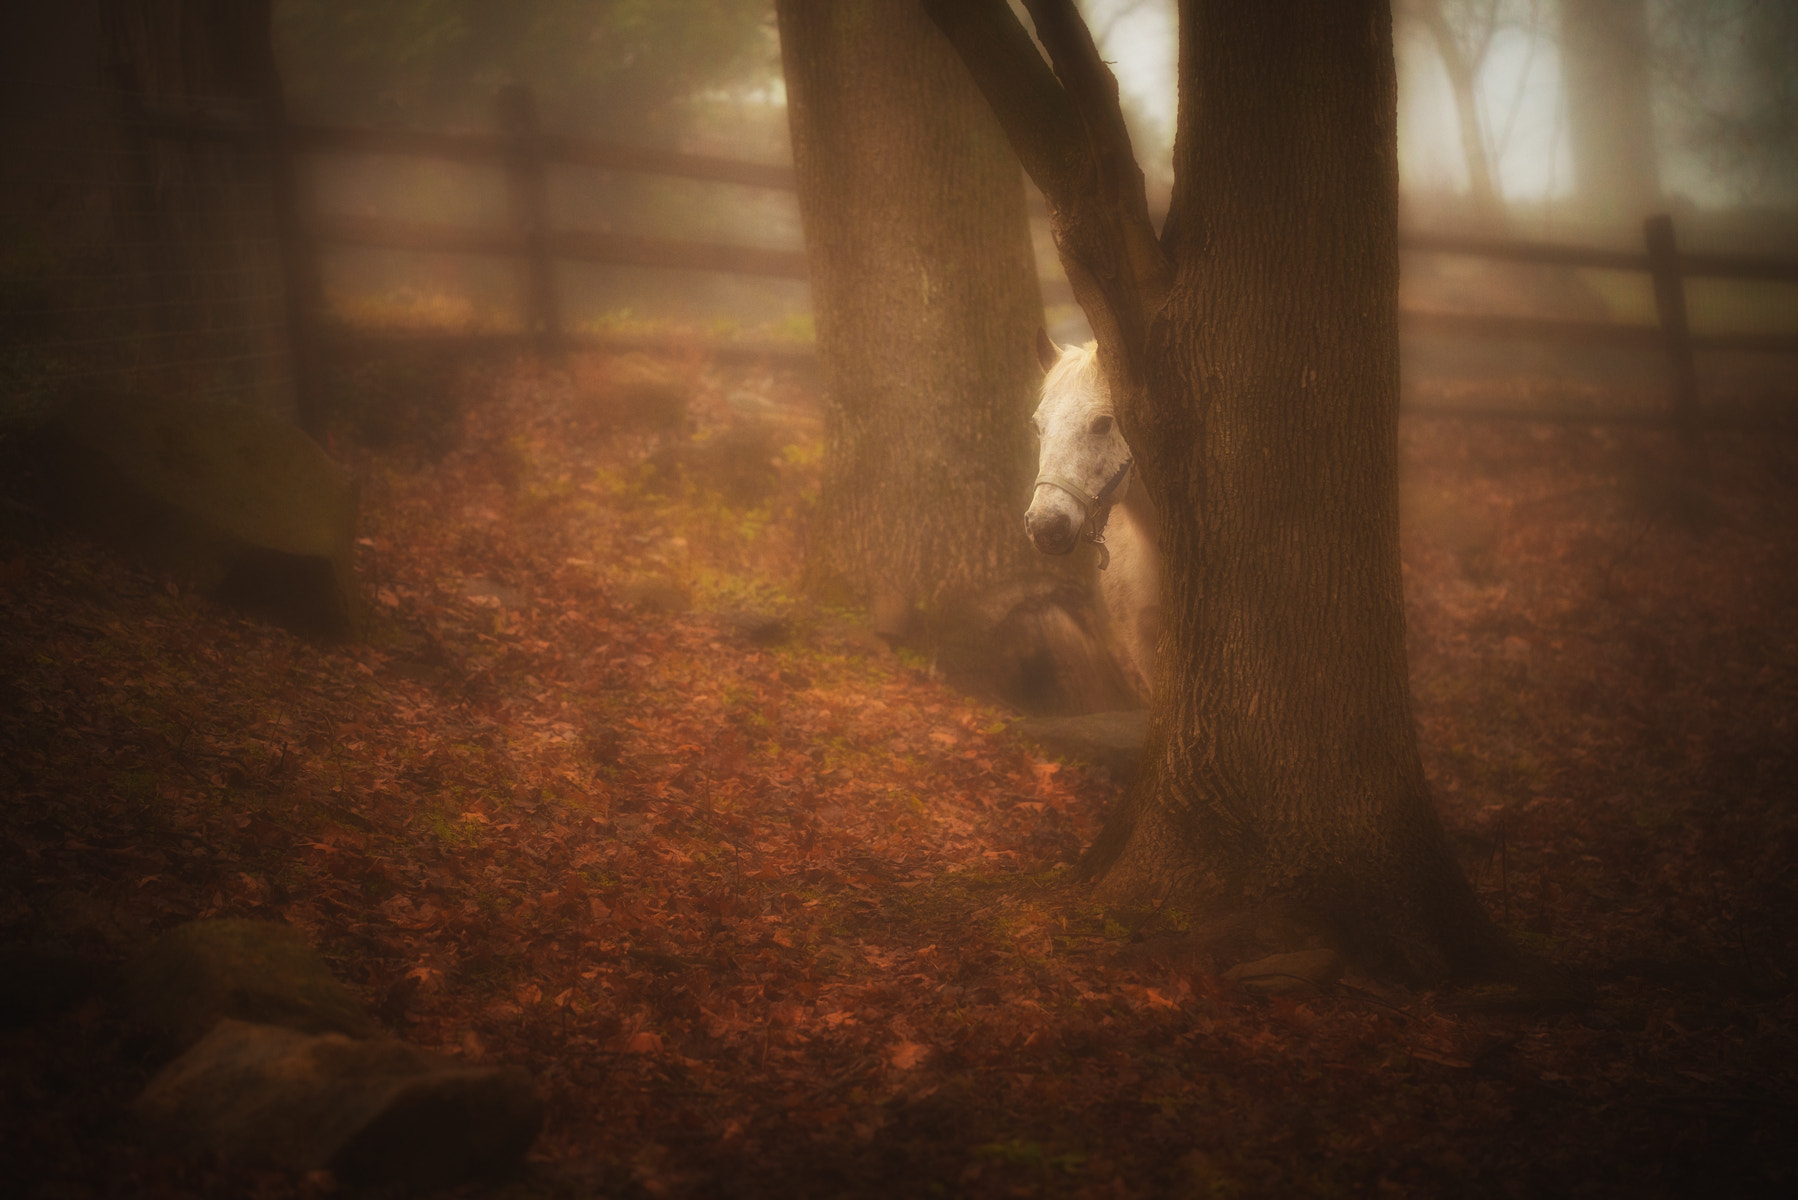 Photograph Once upon a time there was a very shy horse by Shavkat Hoshimov on 500px